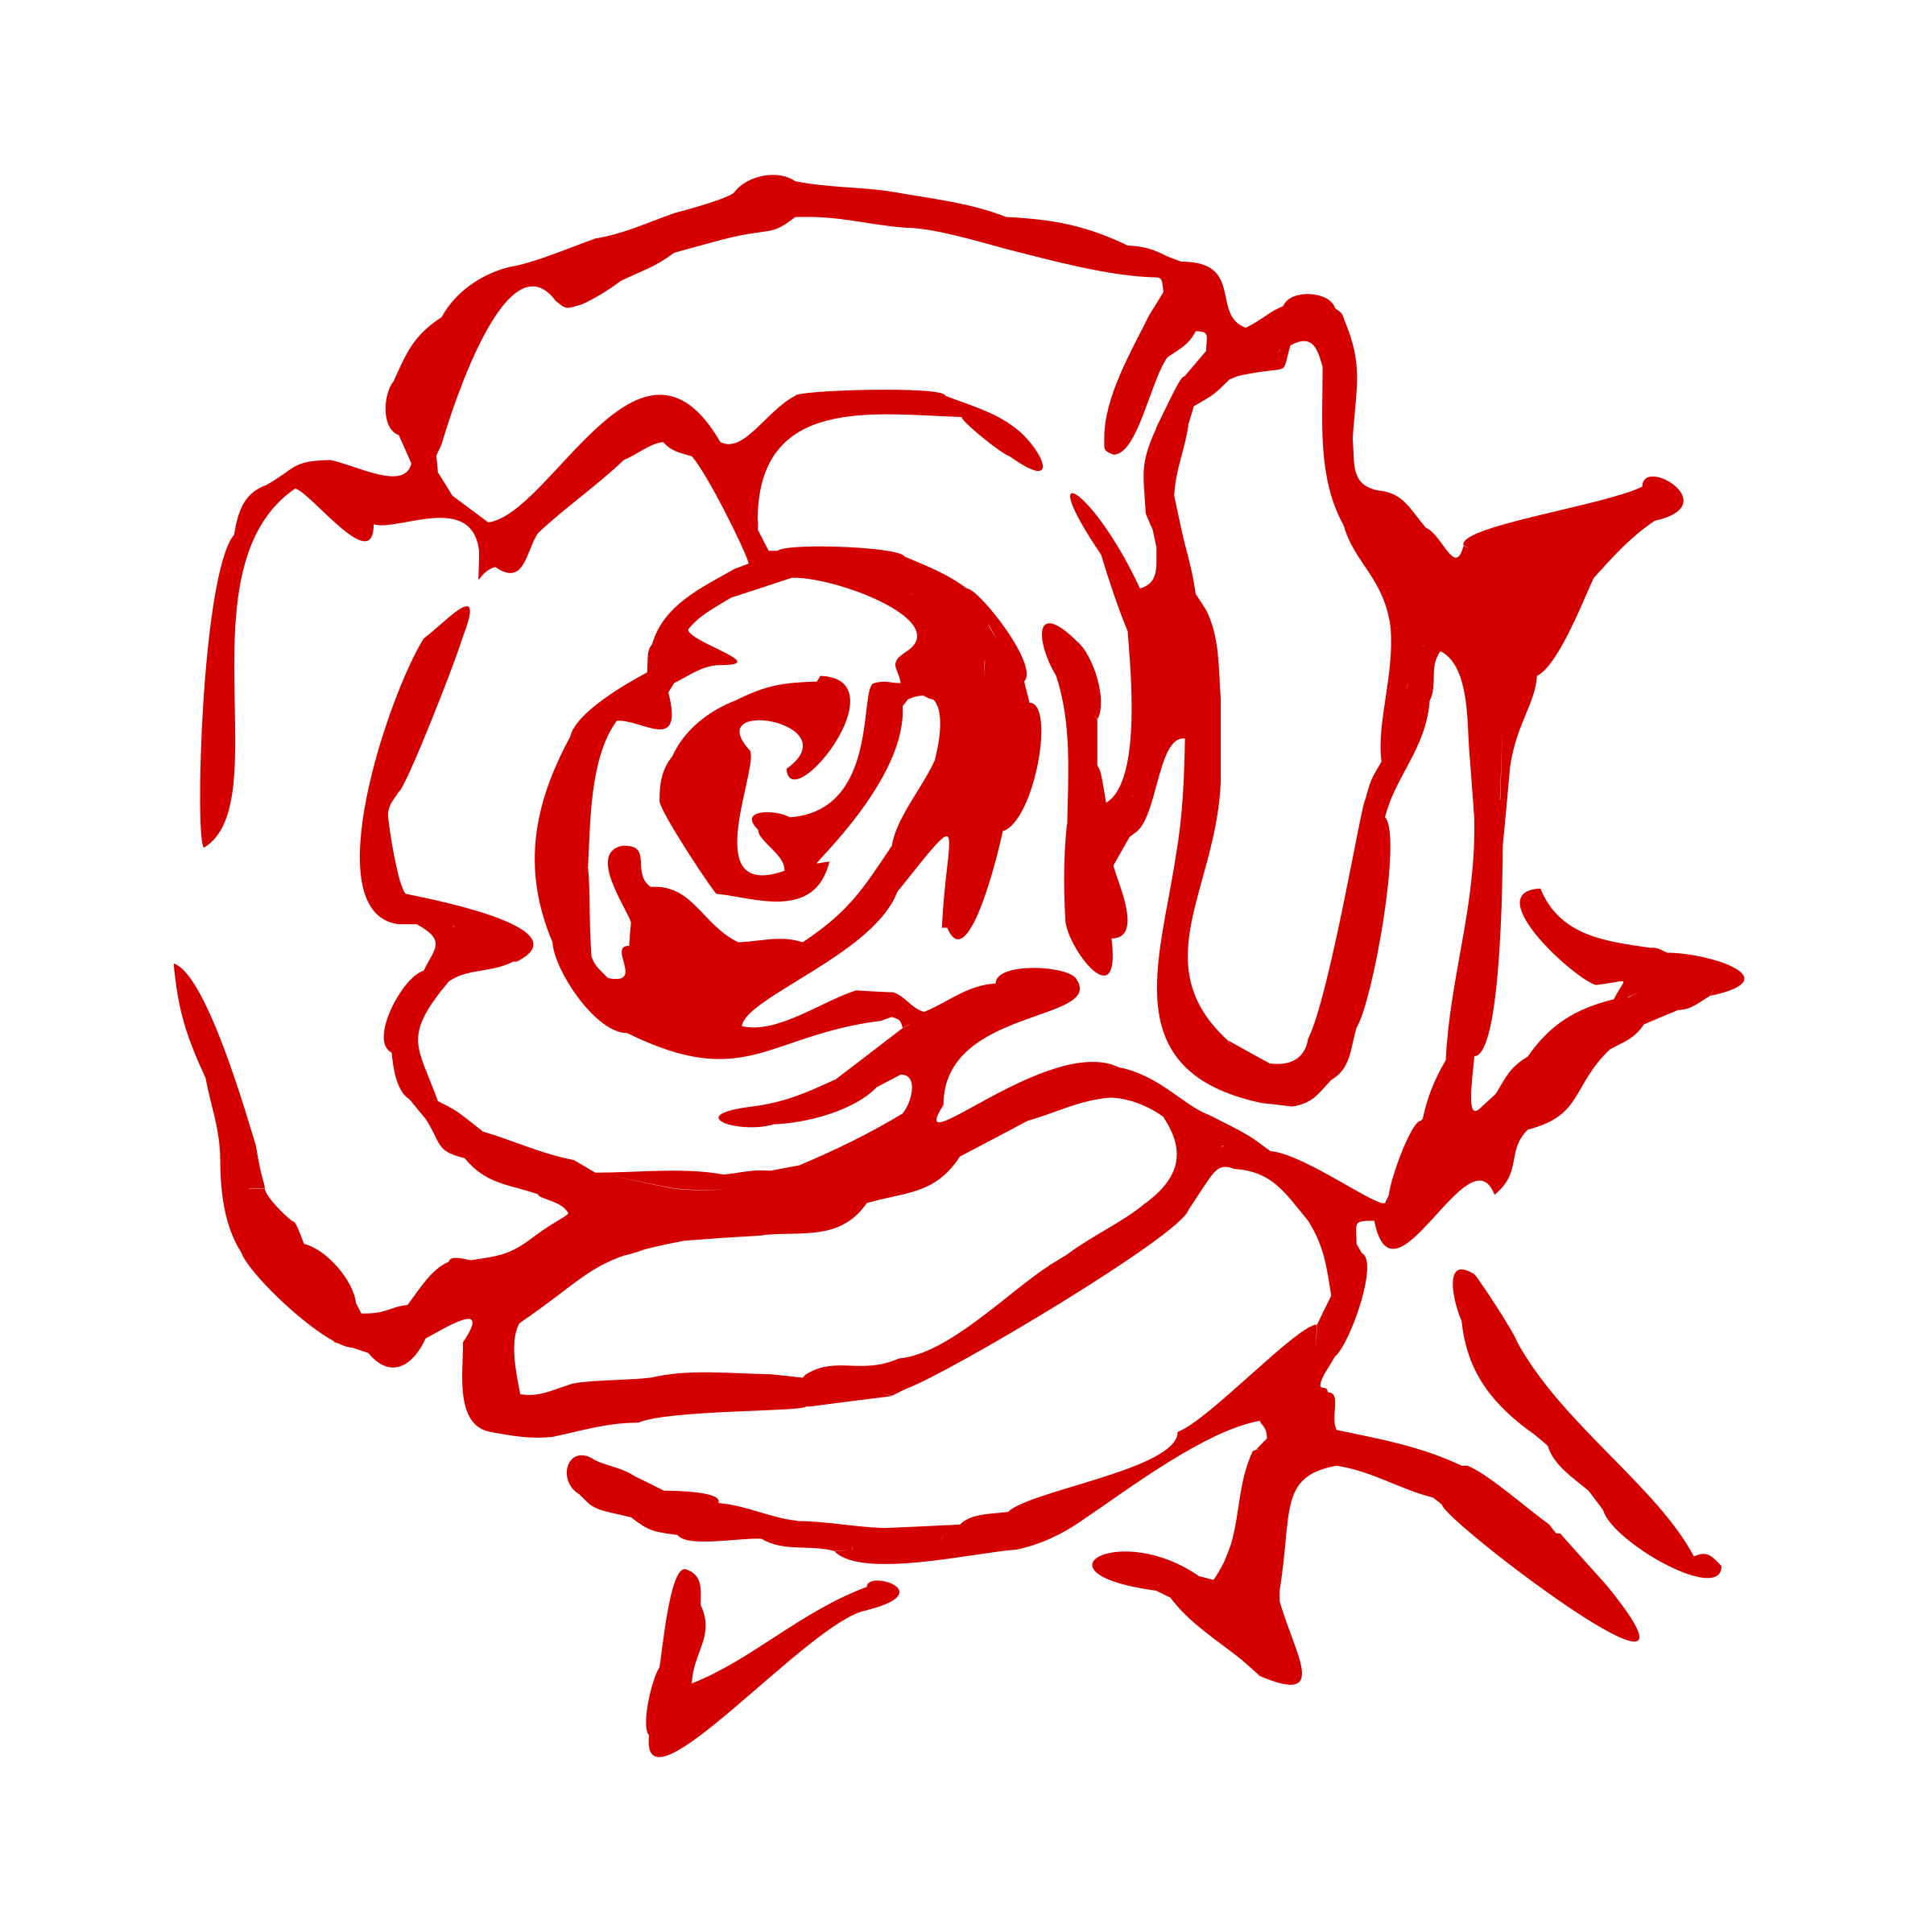 rose by worker